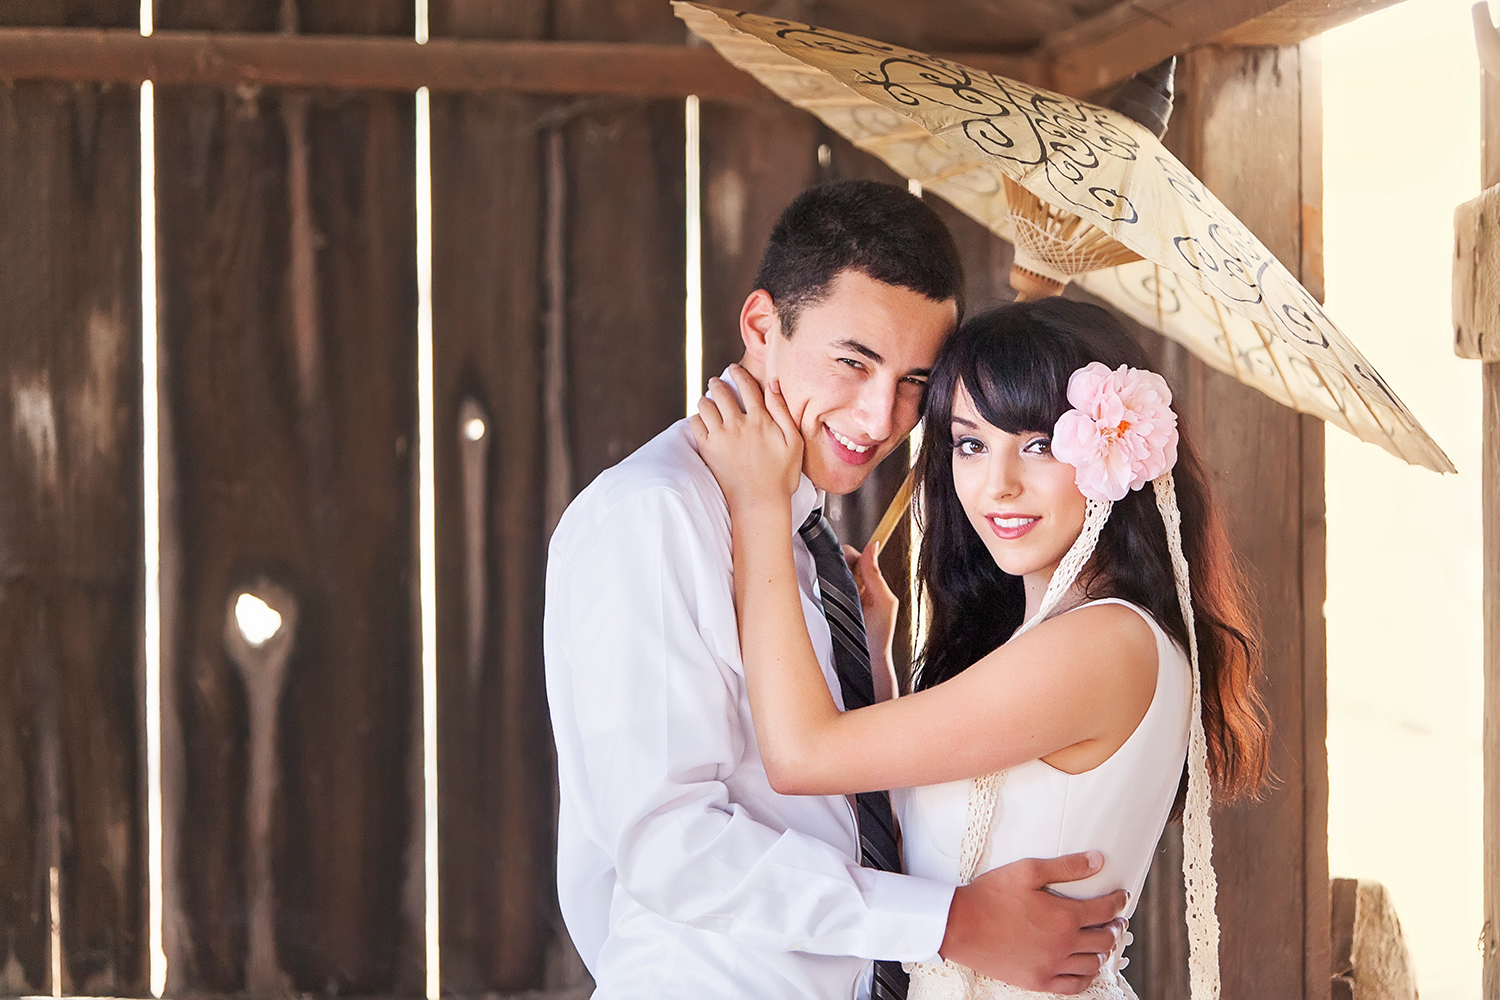 Dena_Rooney_Wedding_Photographer_Ranch_009.jpg